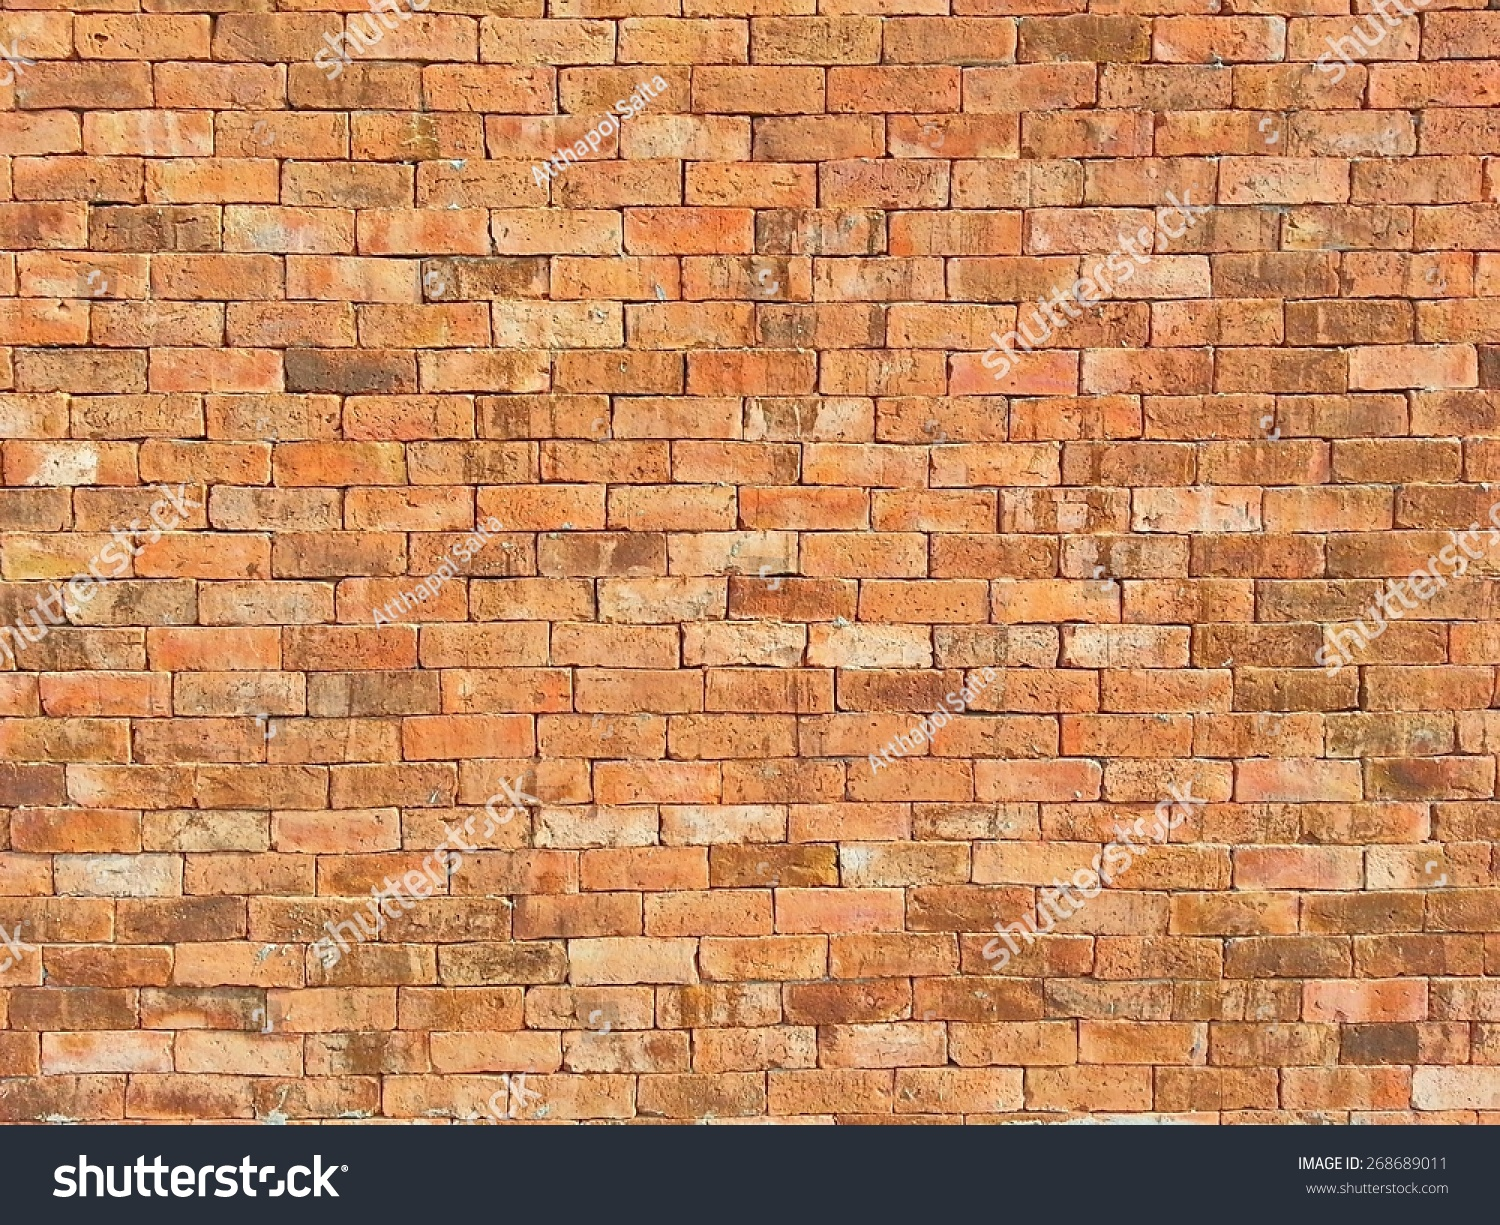 Brick wall surface texture background stock photo for Wall surface texture